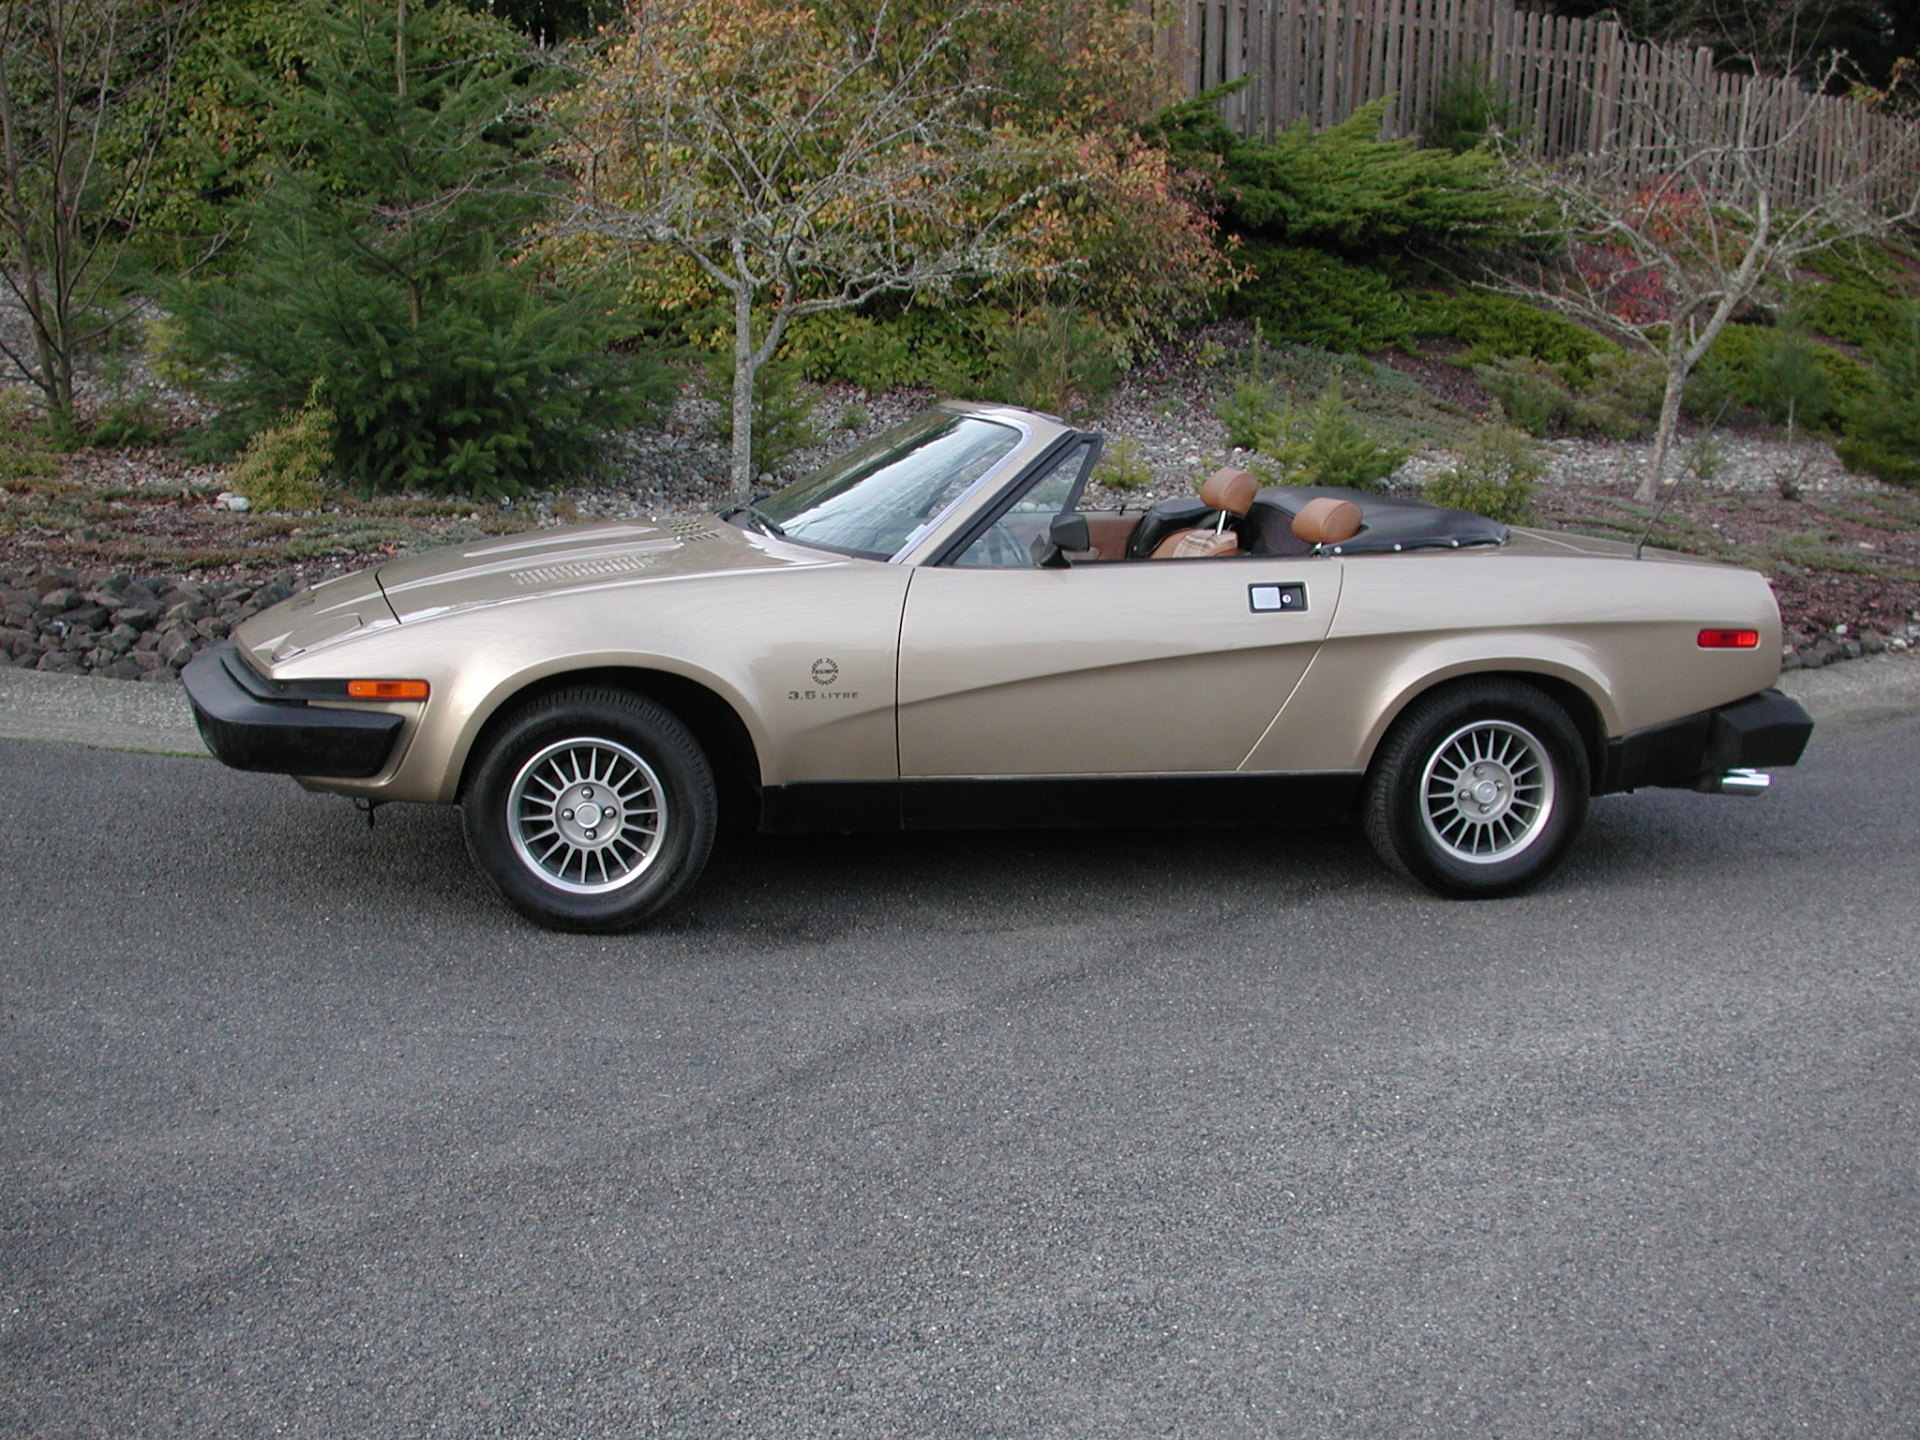 1980 Triumph TR8 Roadster with AC